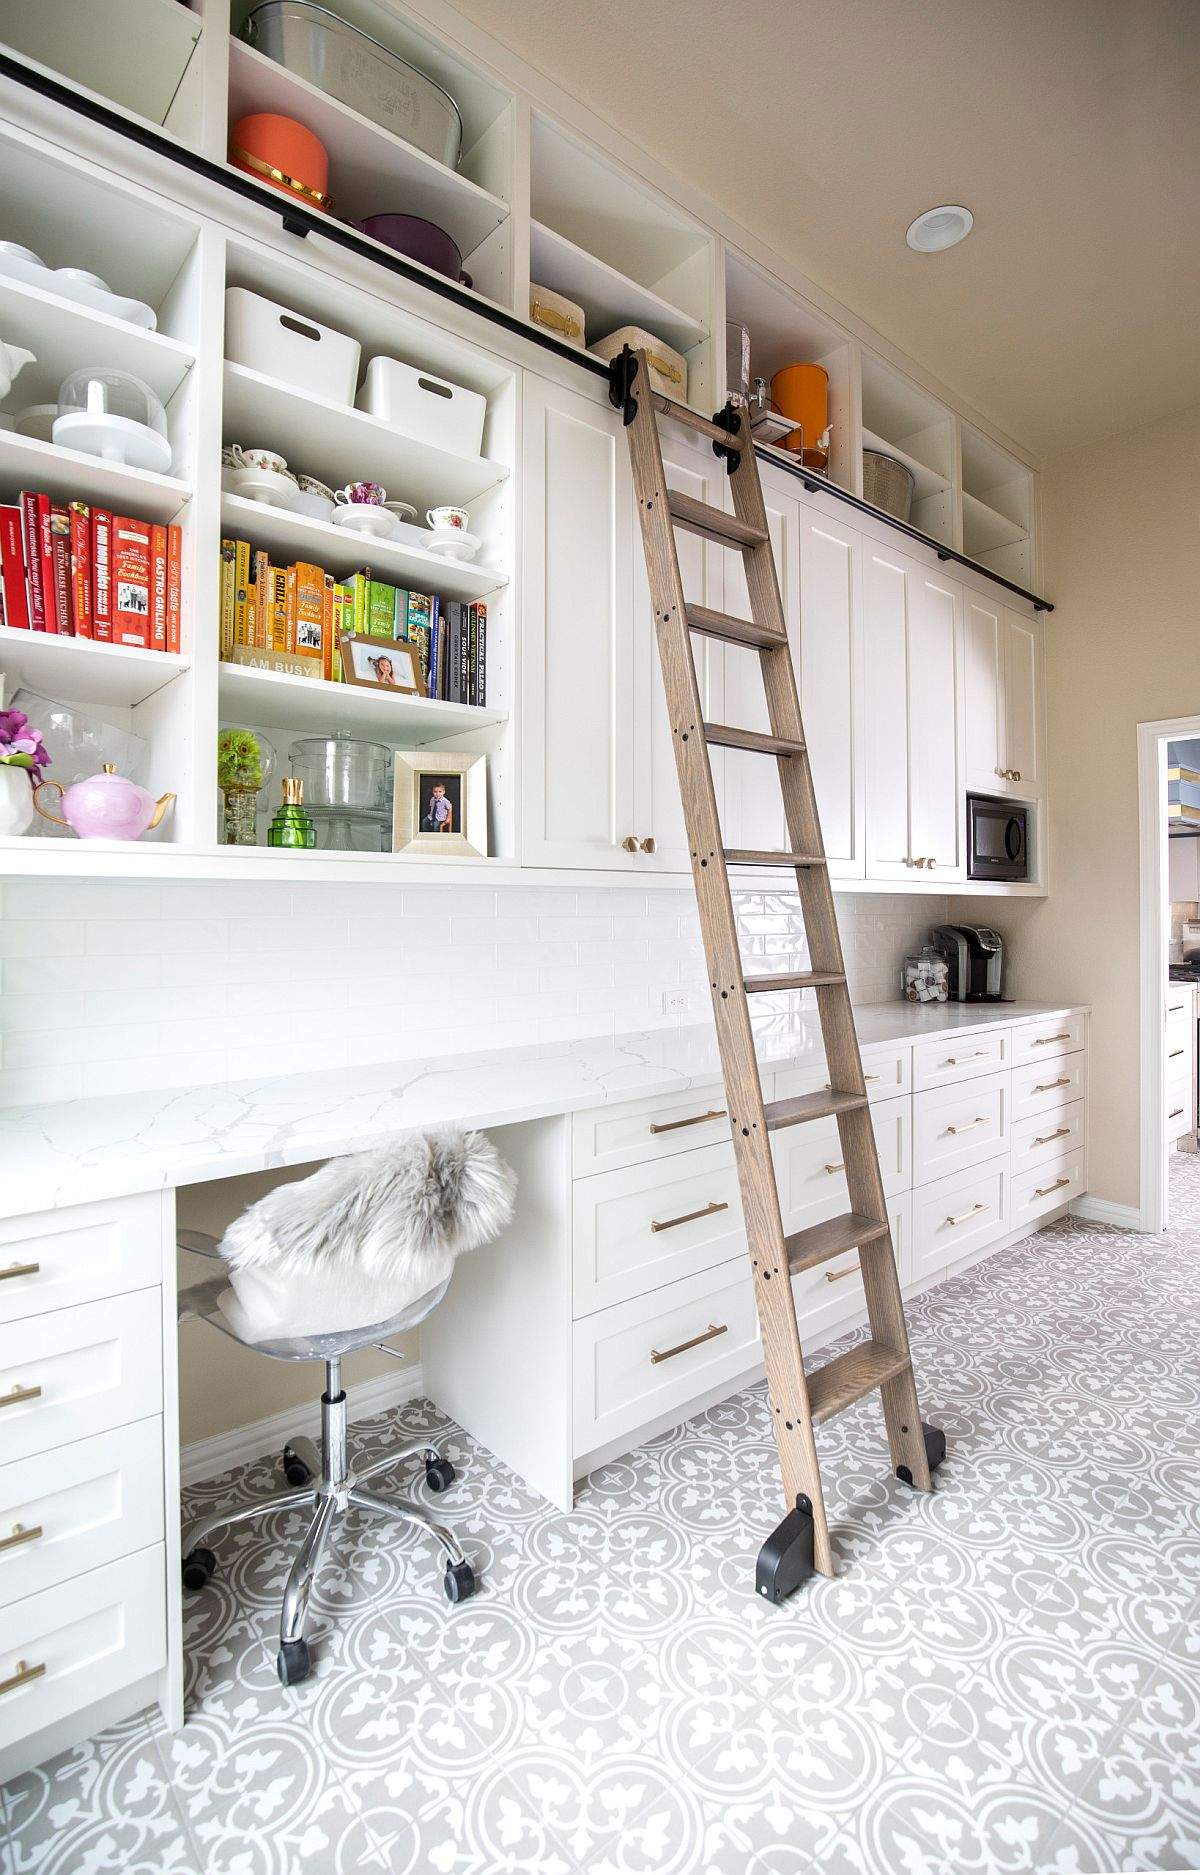 Kitchen offers ample space to create a home workstation by pulling up a chair